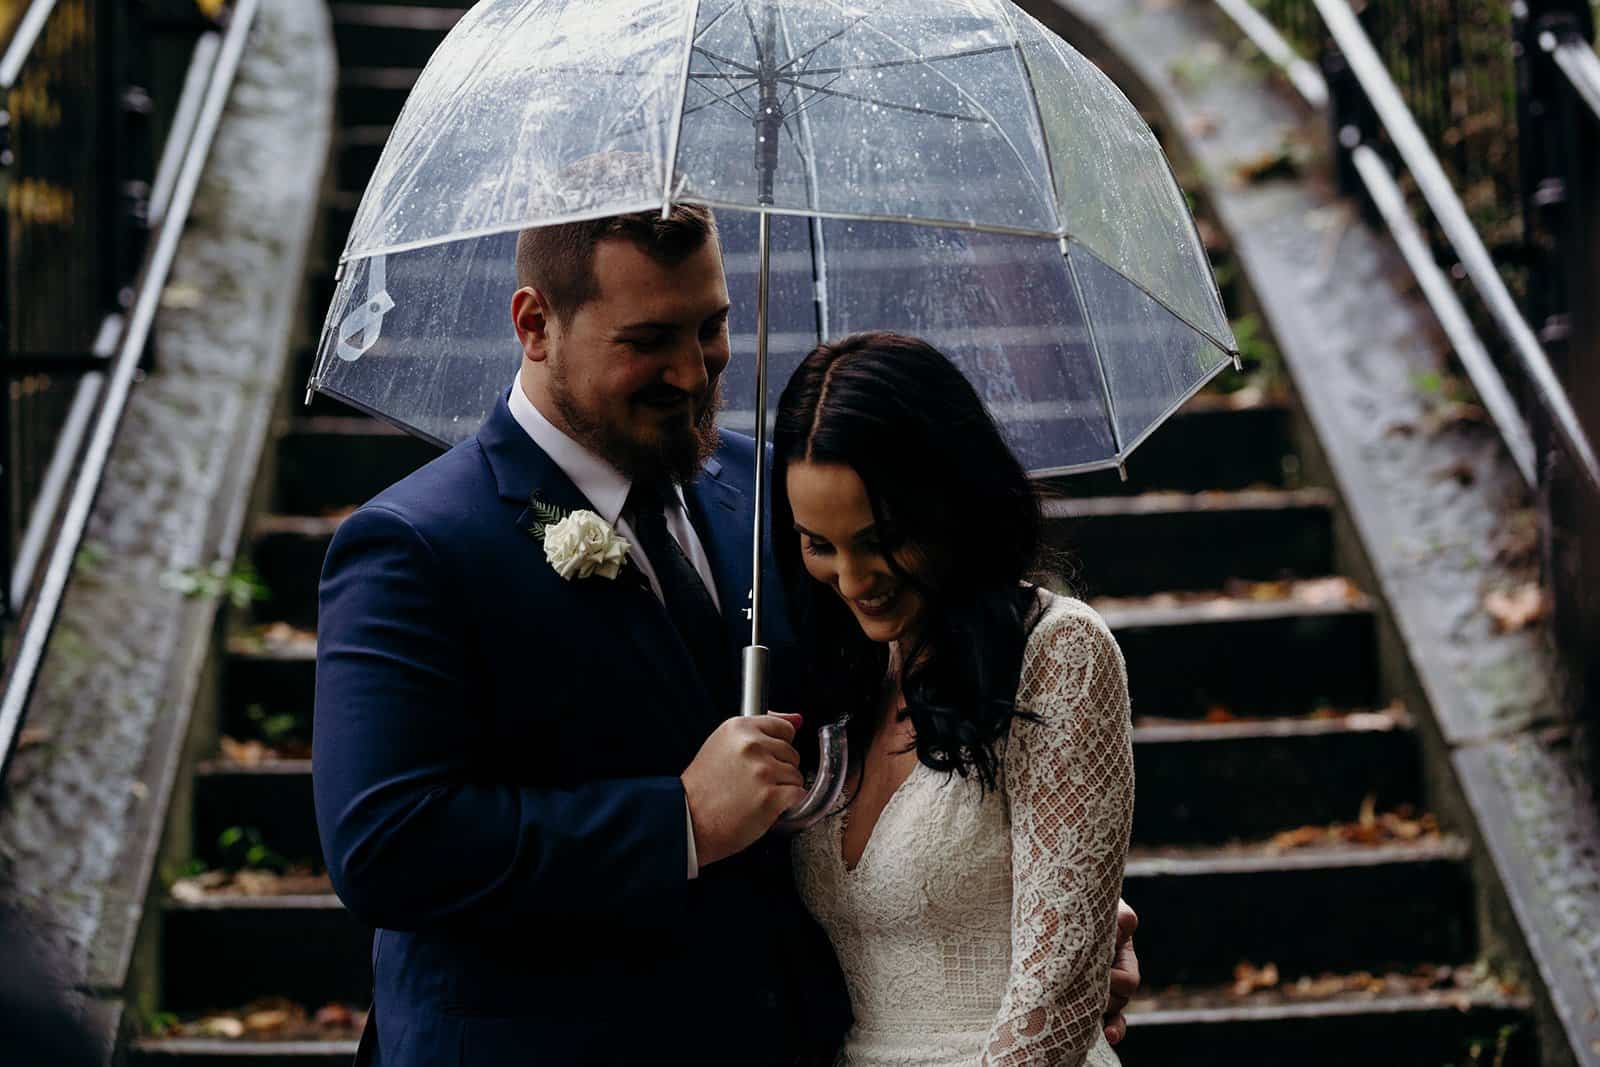 man holds umbrella for woman